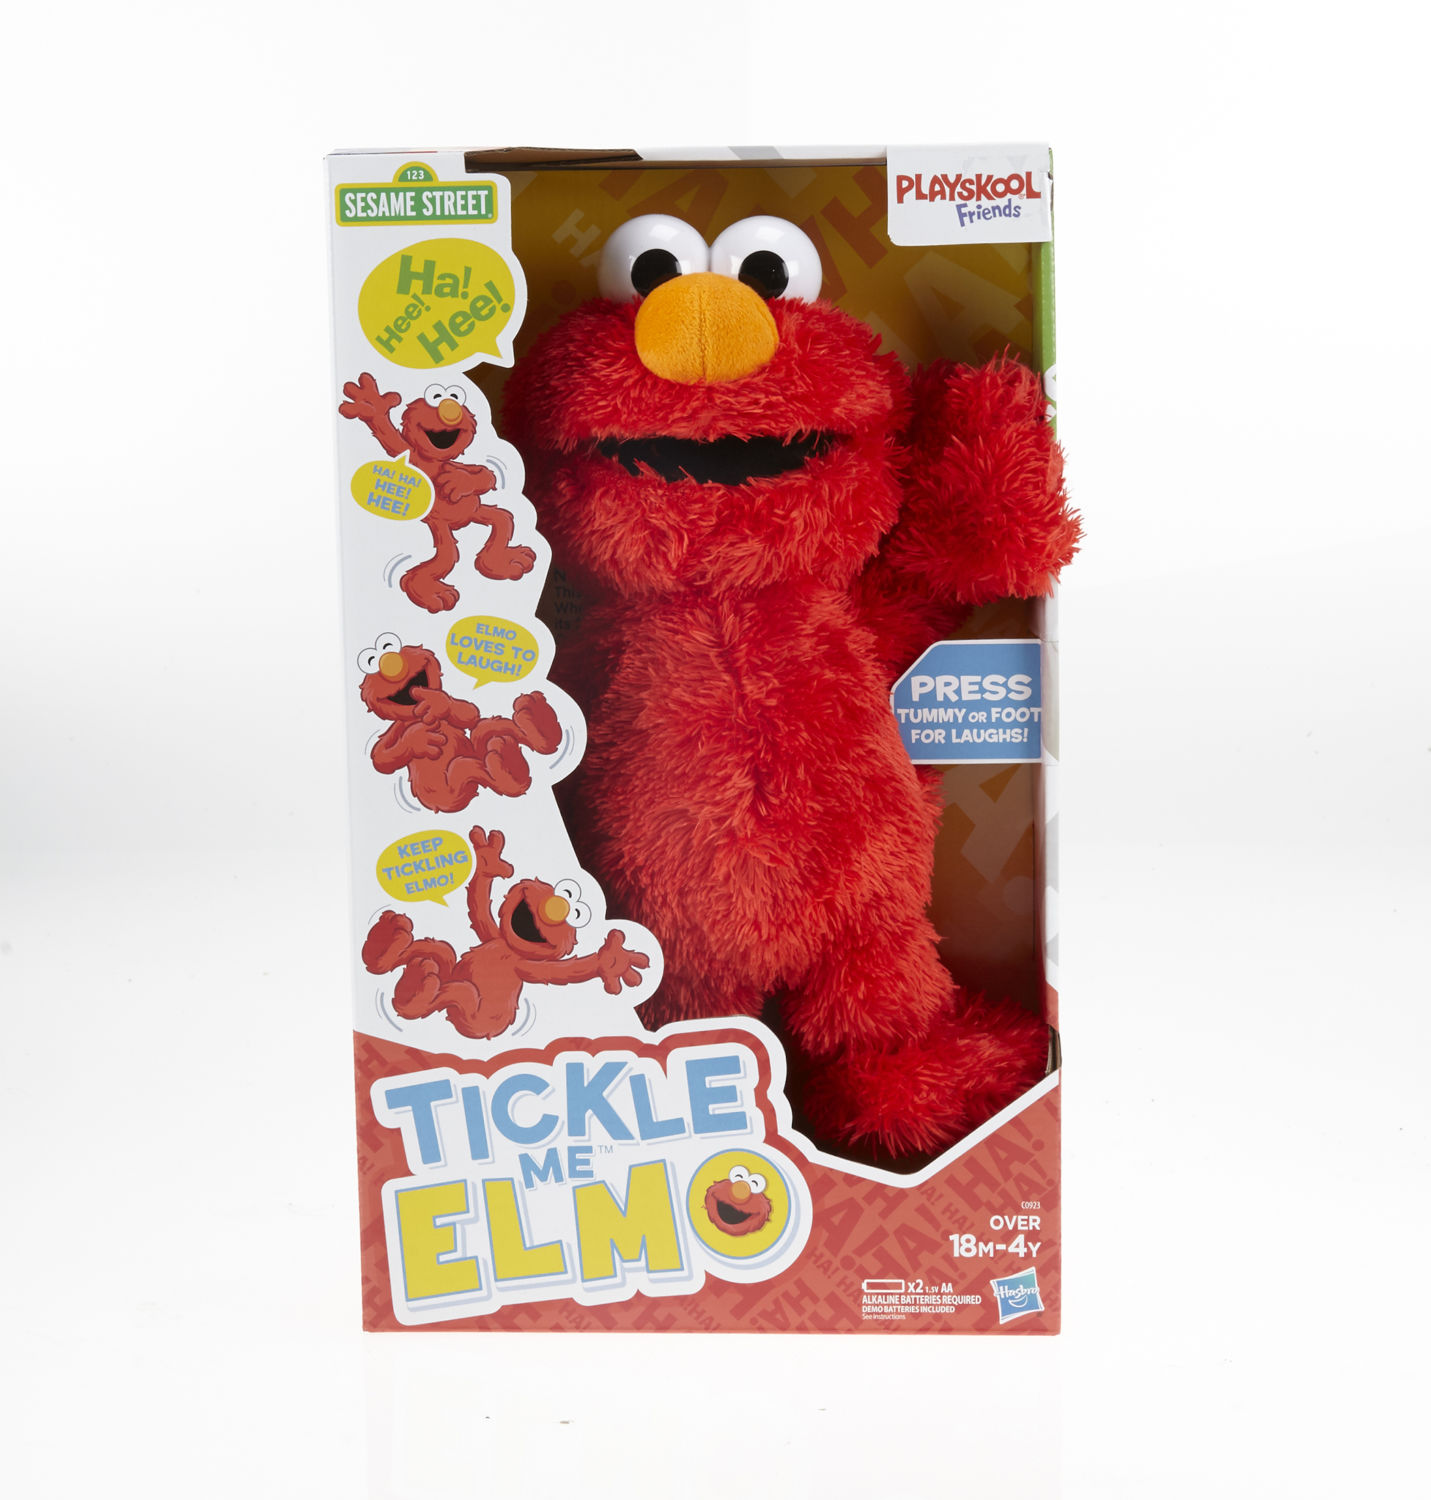 tickle me elmo will